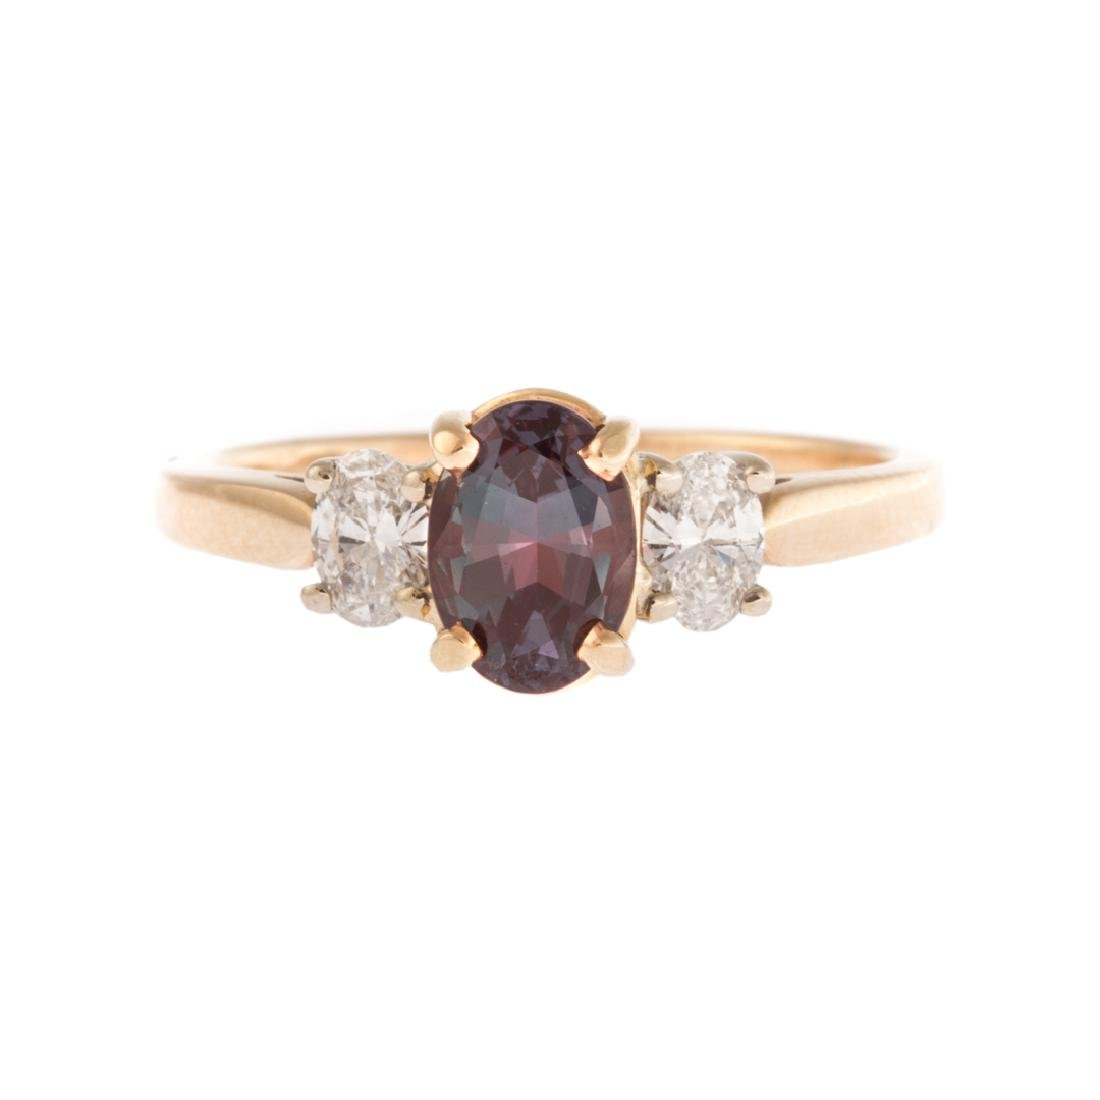 A Lady's Natural Alexandrite and Diamond Ring